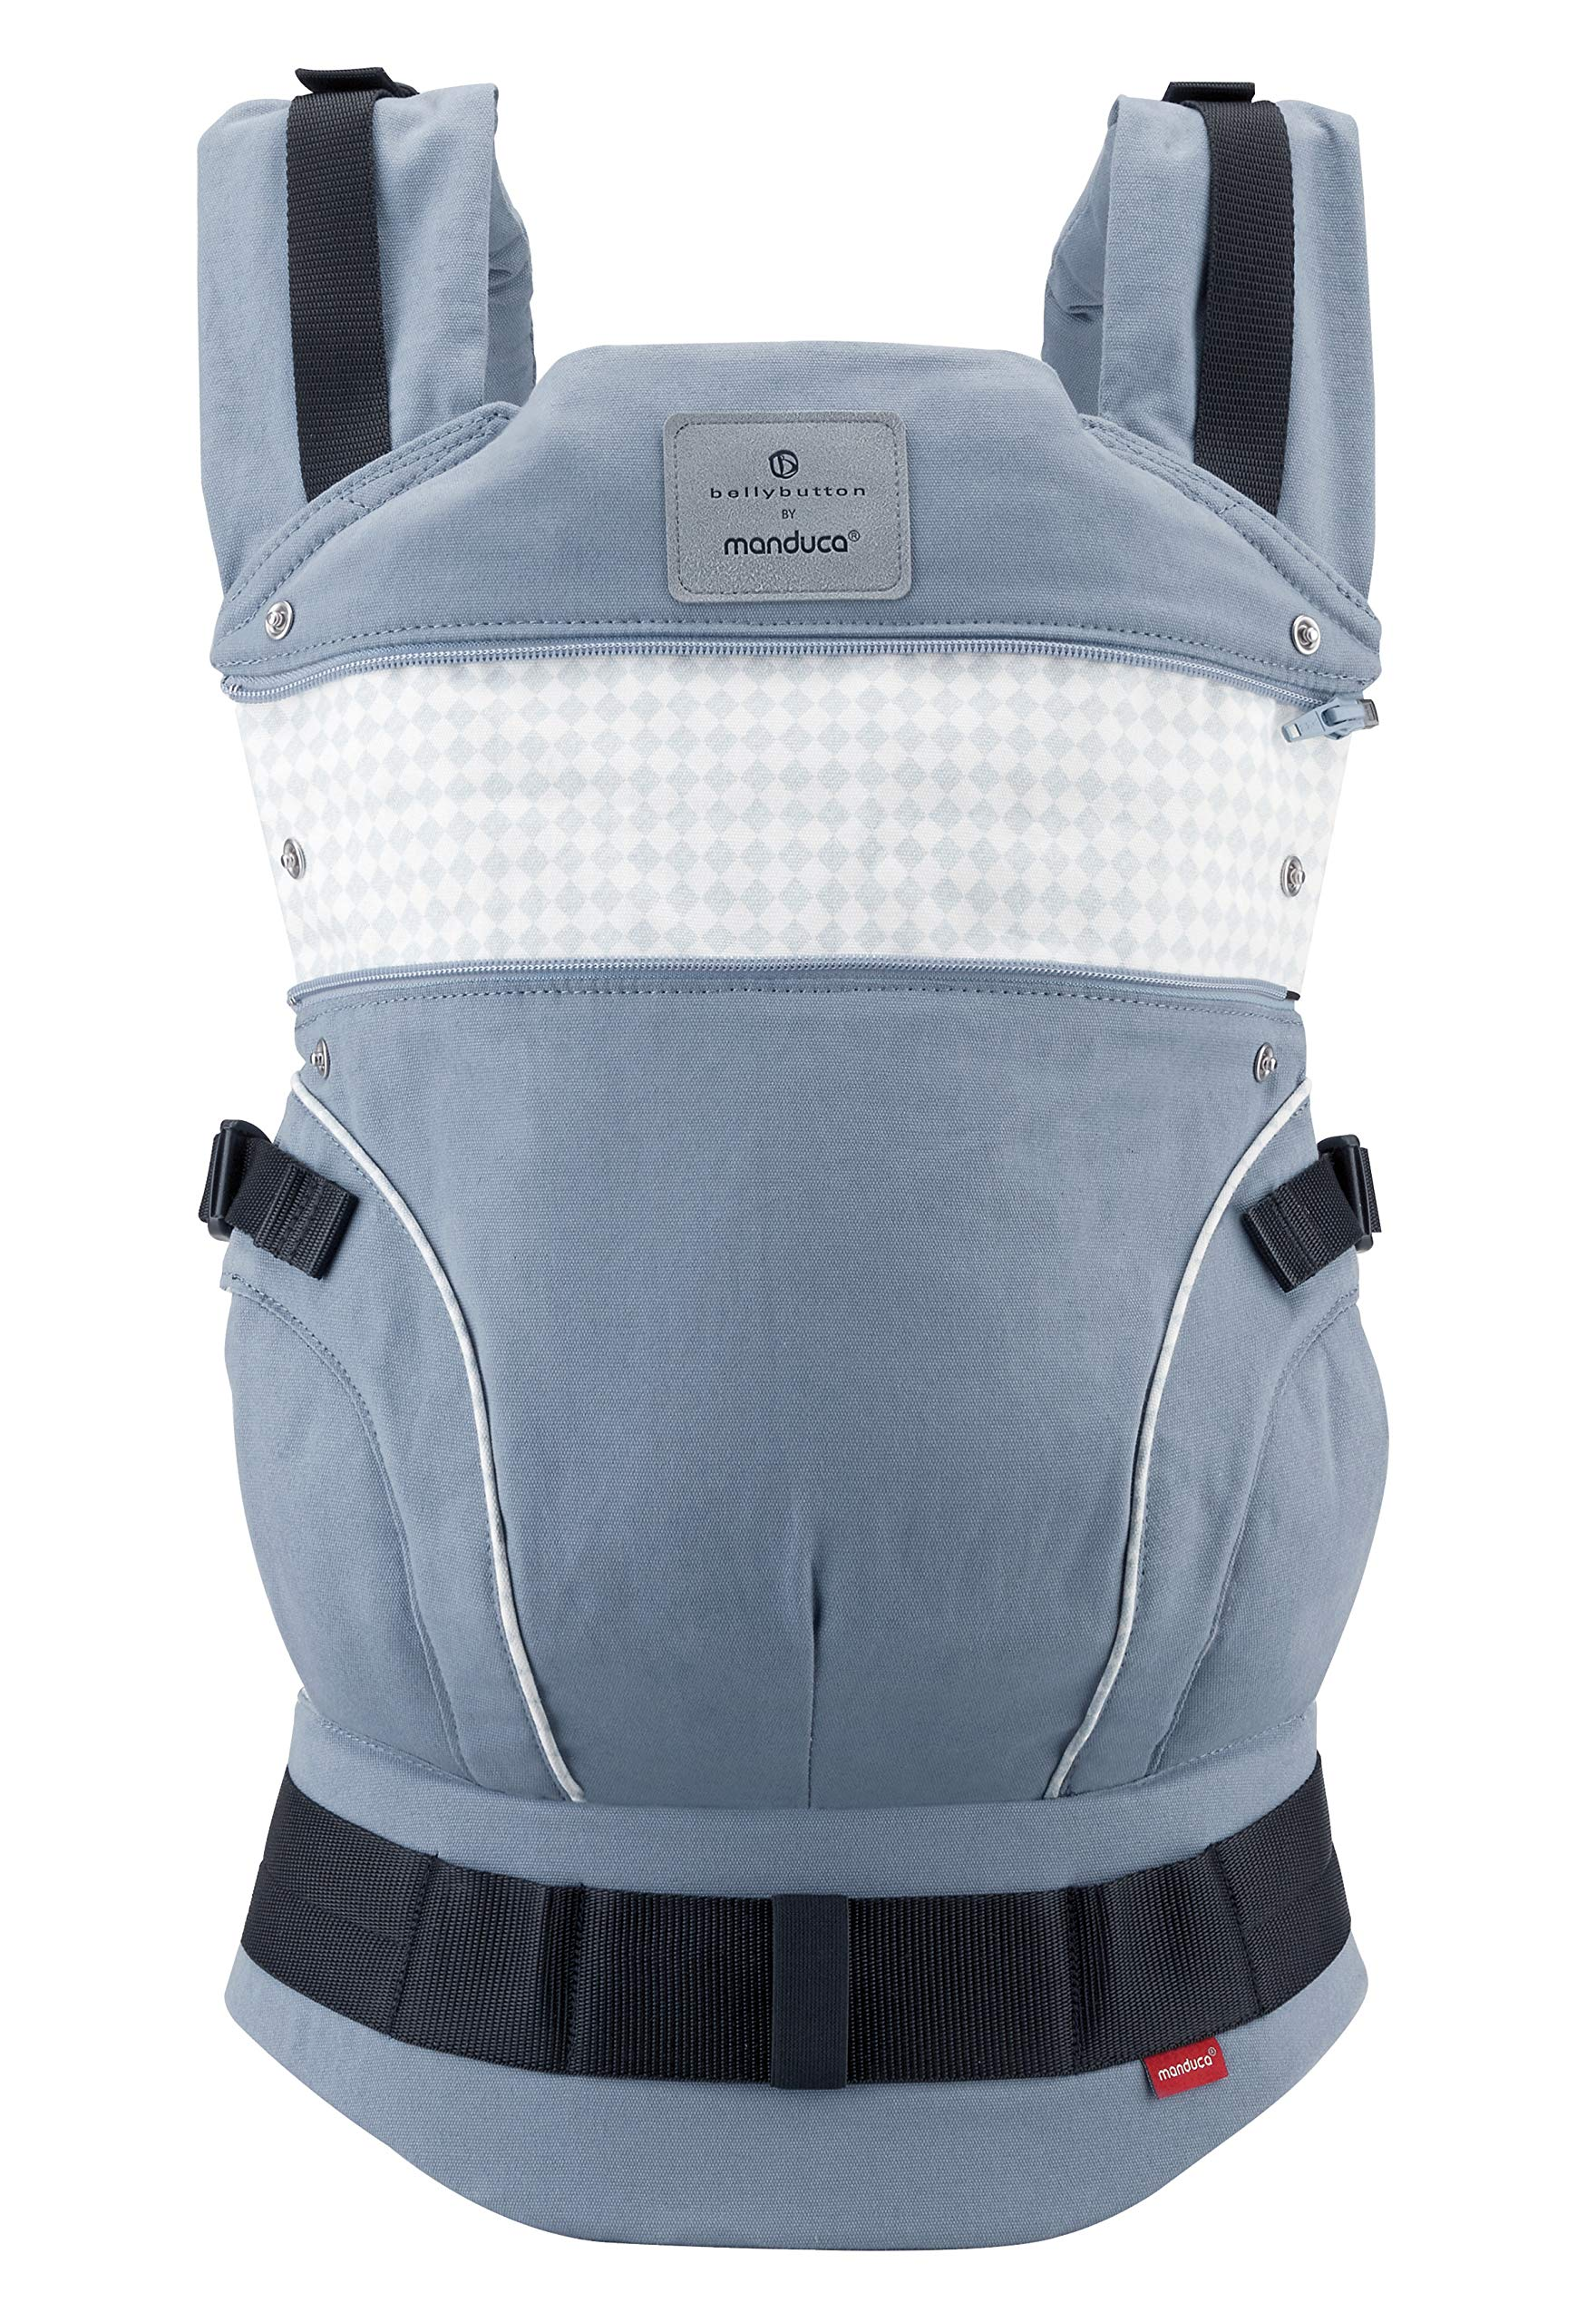 manduca First Baby Carrier > Bellybutton by manduca Edition, SoftCheck Blue < Child Carrier with Ergonomic Waist Belt & Patented Back Extension, Newborn to Toddler Manduca Trendy design in typical Bellybutton look, fine checked pattern on elegant grey, premium baby carrier made from 100% soft organic cotton with optimised finish, does not attract lint. Already integrated: seat reducer, stowable head and neck support, patented back extension, recommended accessories for newborns: Size-It (bridge reducer) and ZipIn ellipse. Ergonomic design for parents: anatomically shaped, dimensionally stable hip belt (up to 140 cm), 3-way adjustable soft padded shoulder straps, relieves the back and distributes the weight. 5